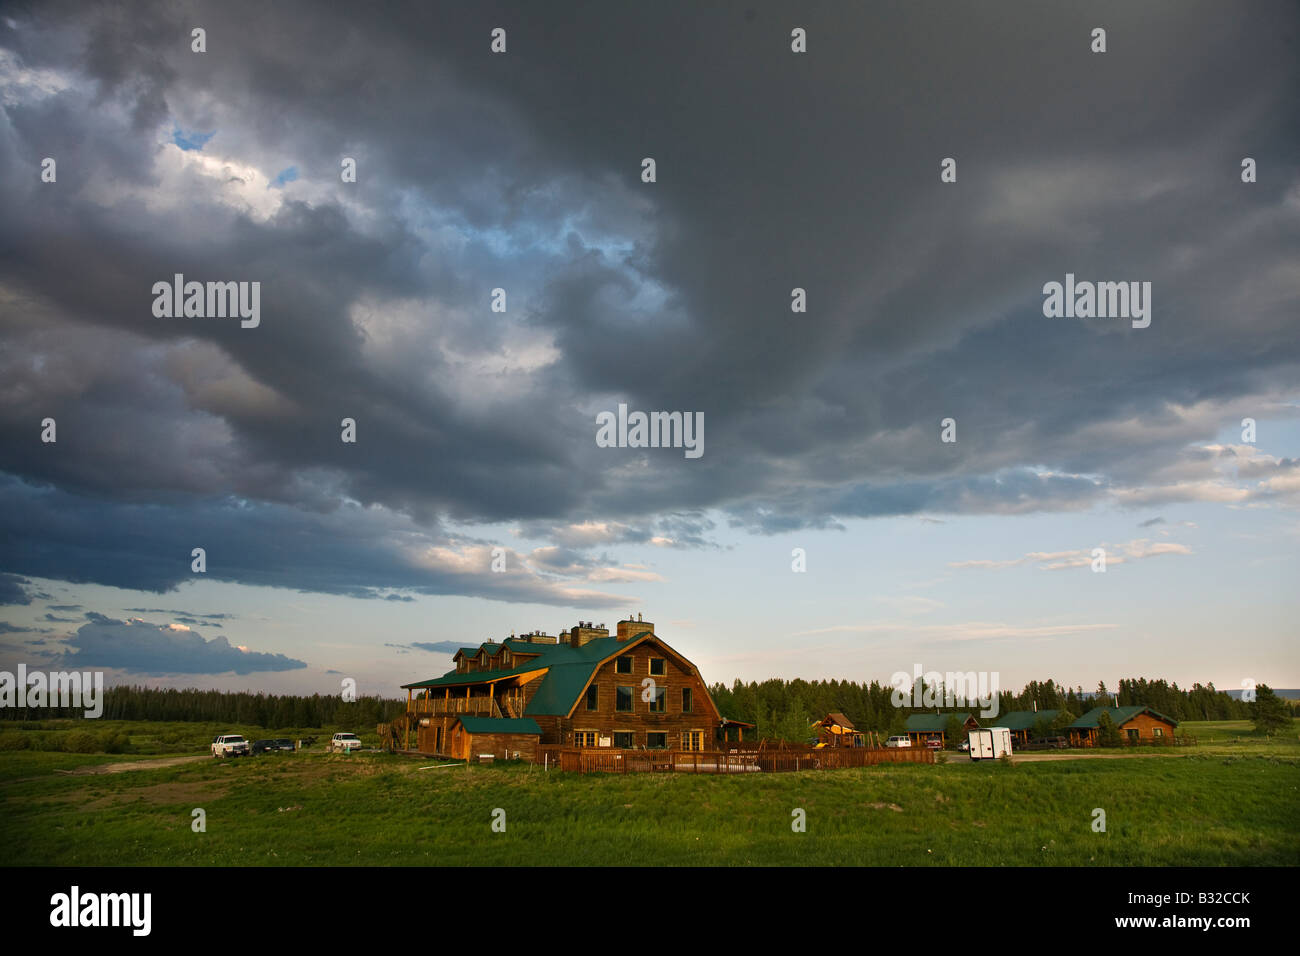 The BAR N RANCH is a guest ranch with fine food and accommodations WEST YELLOWSTONE MONTANA - Stock Image